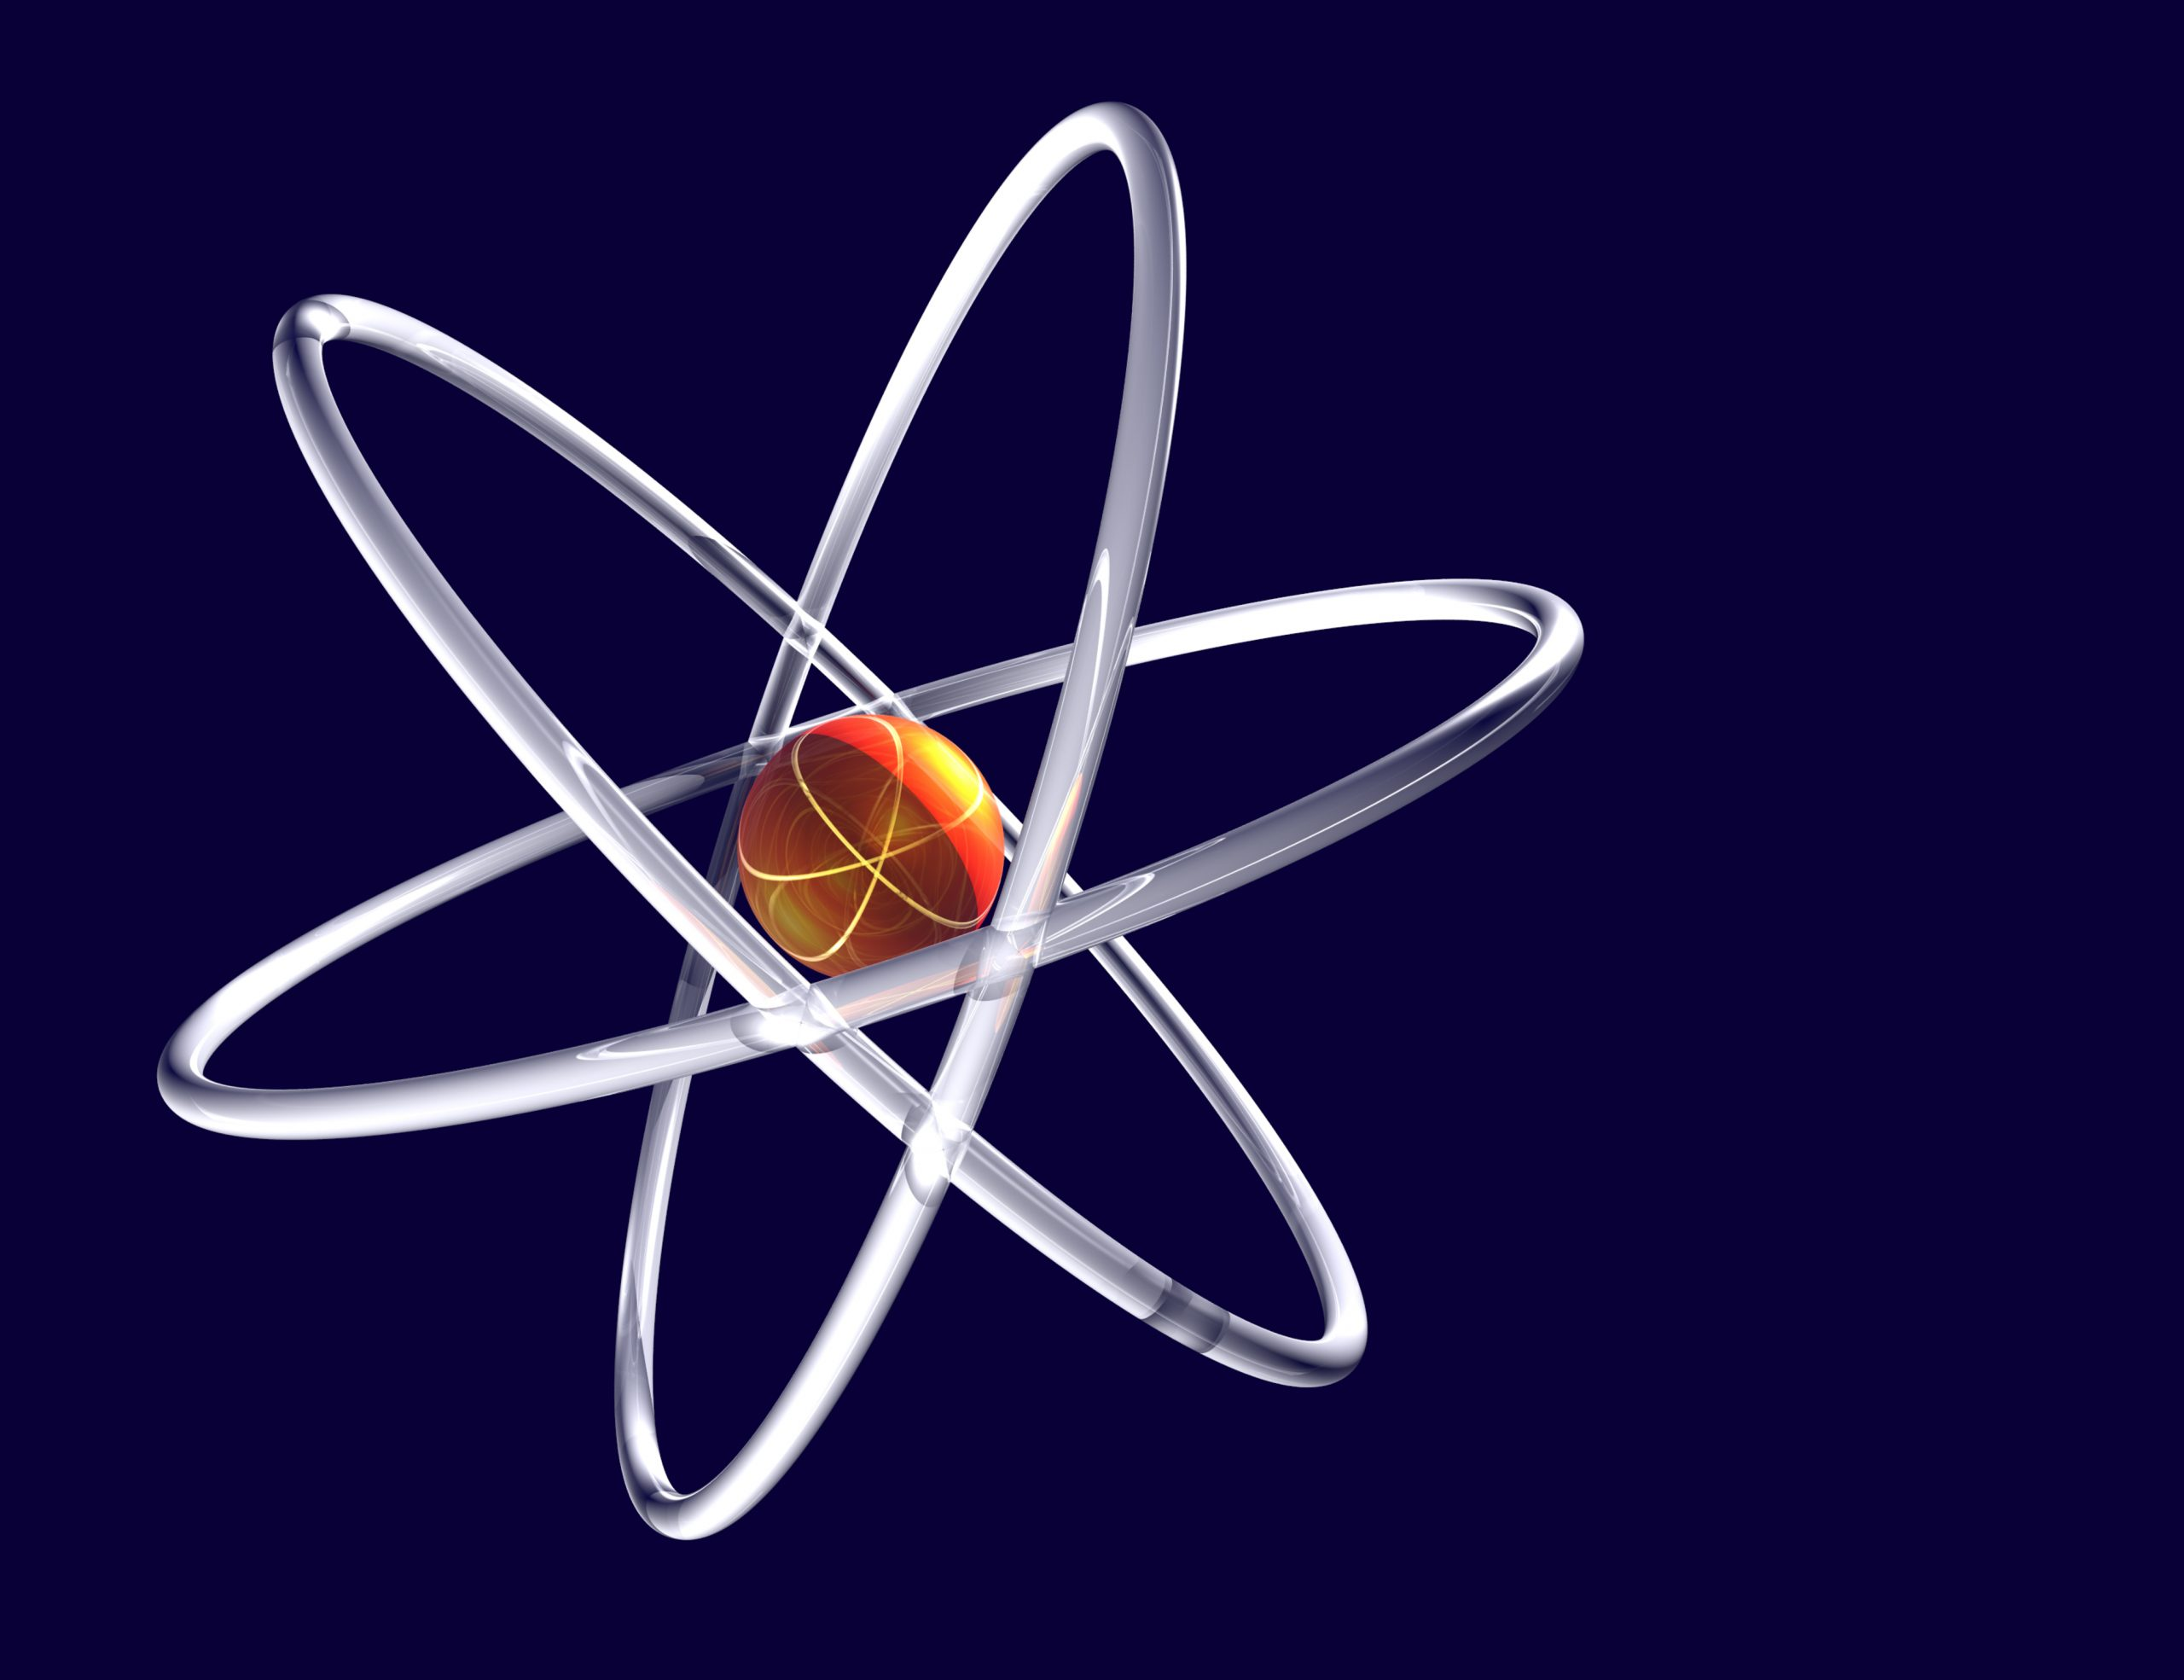 Bible Knows Best: Atoms, The Dust of the World -by David Rives